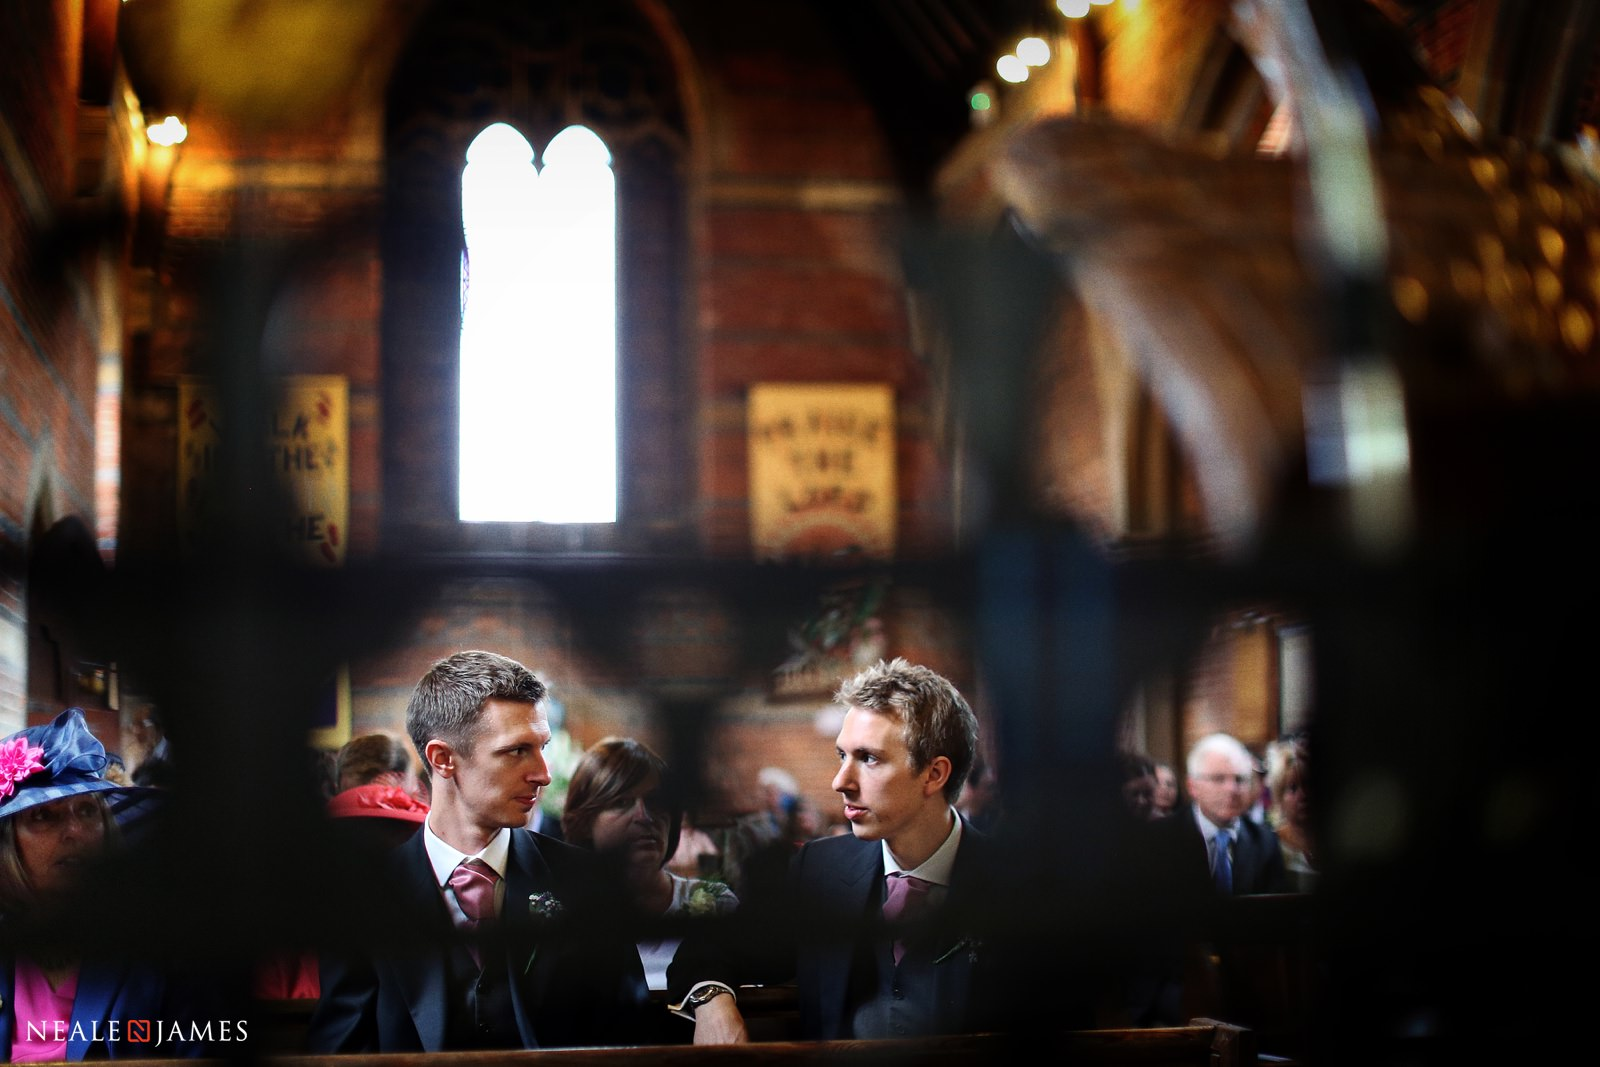 Colour photograph of groom and best man waiting for the bride in a Berkshire church